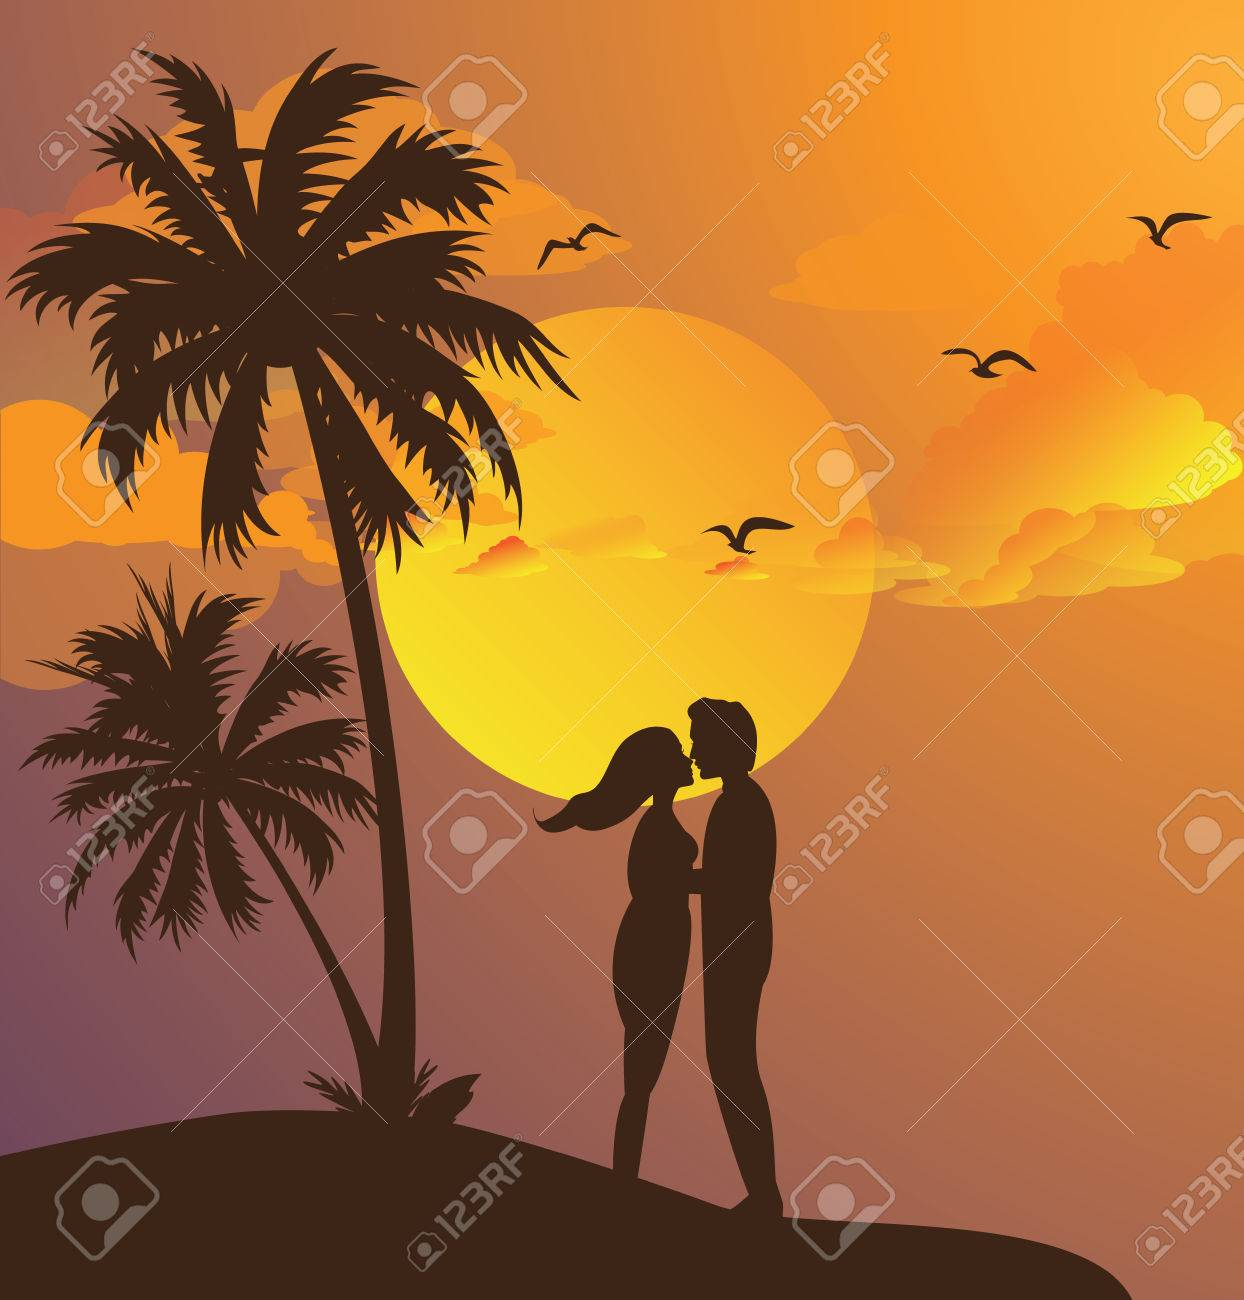 couple kissing silhouette sunset on beach romantic moment yellow sky palm tree vector Stock Vector - 55601895